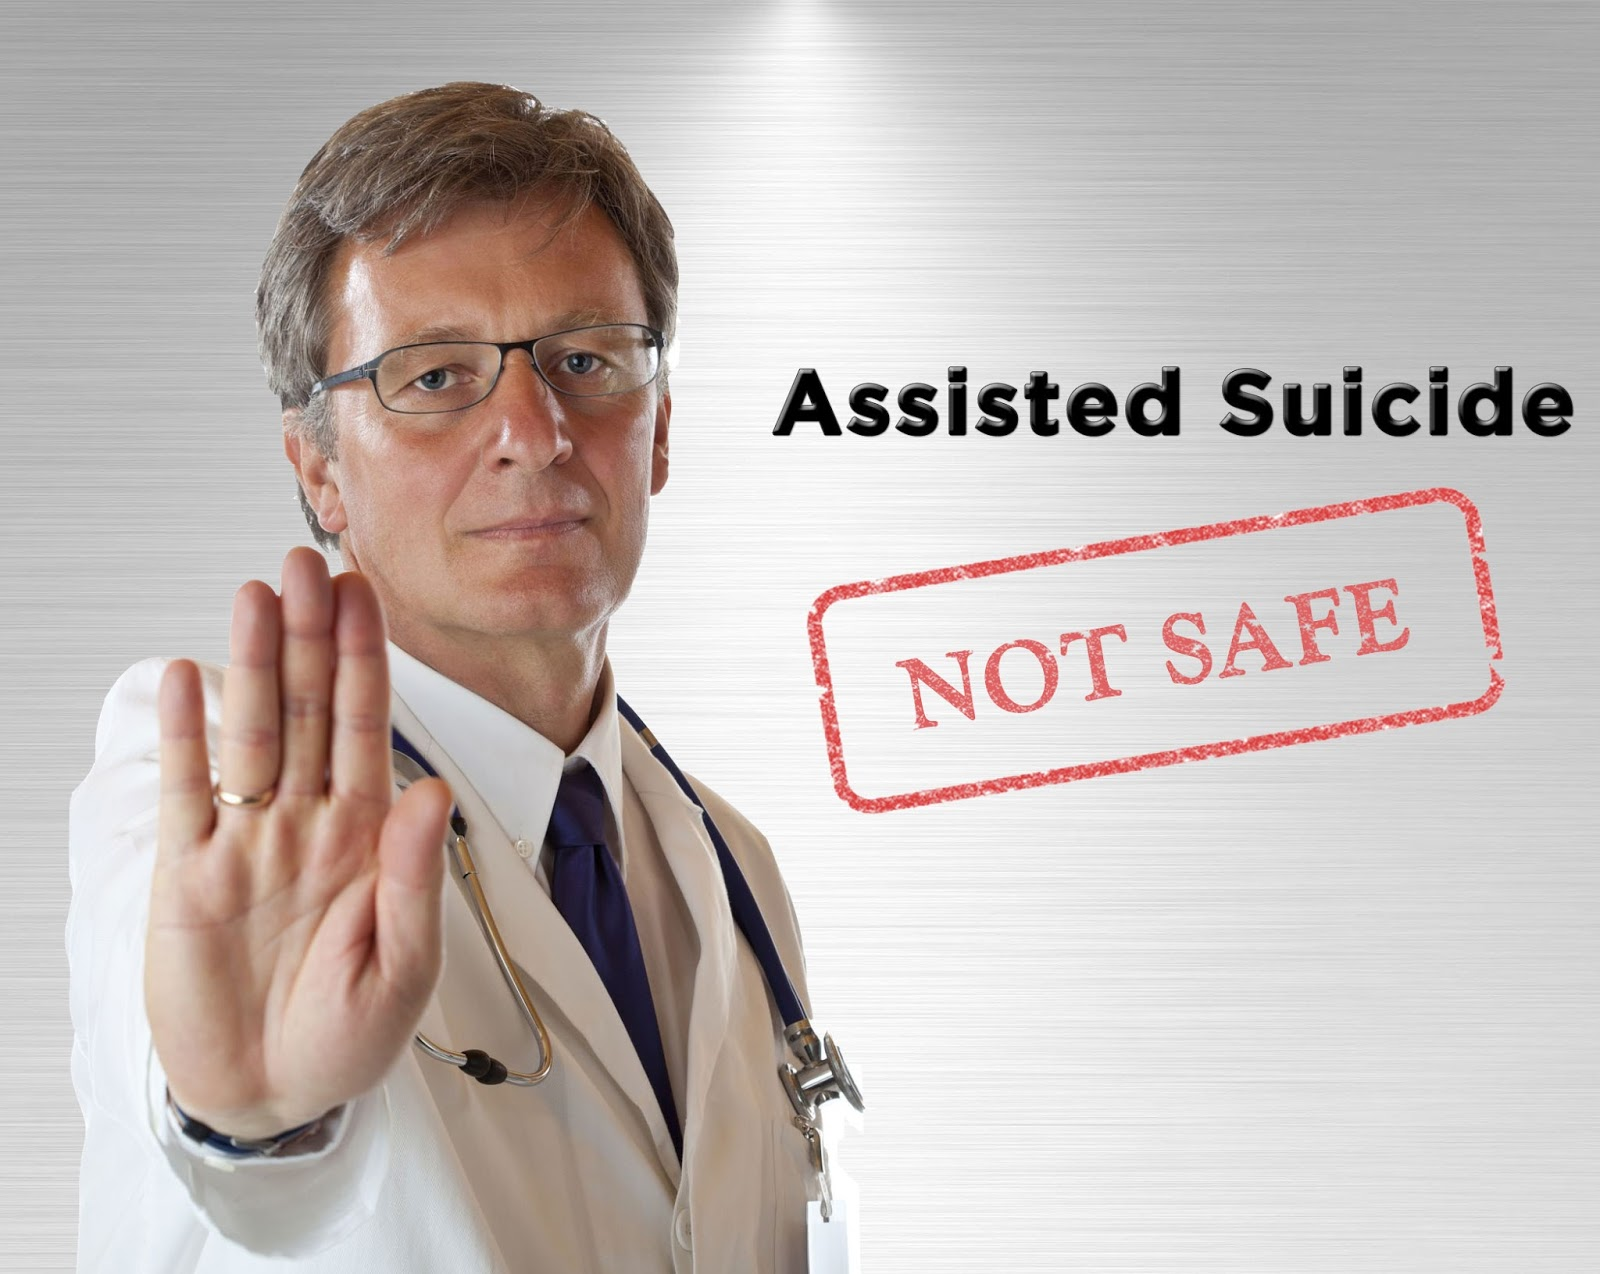 euthanasia and the legality of suicide in australia The parliament of australia enacts: this act may be cited as the euthanasia laws act 1997 2 commencement of legal sanctions against attempted suicide.